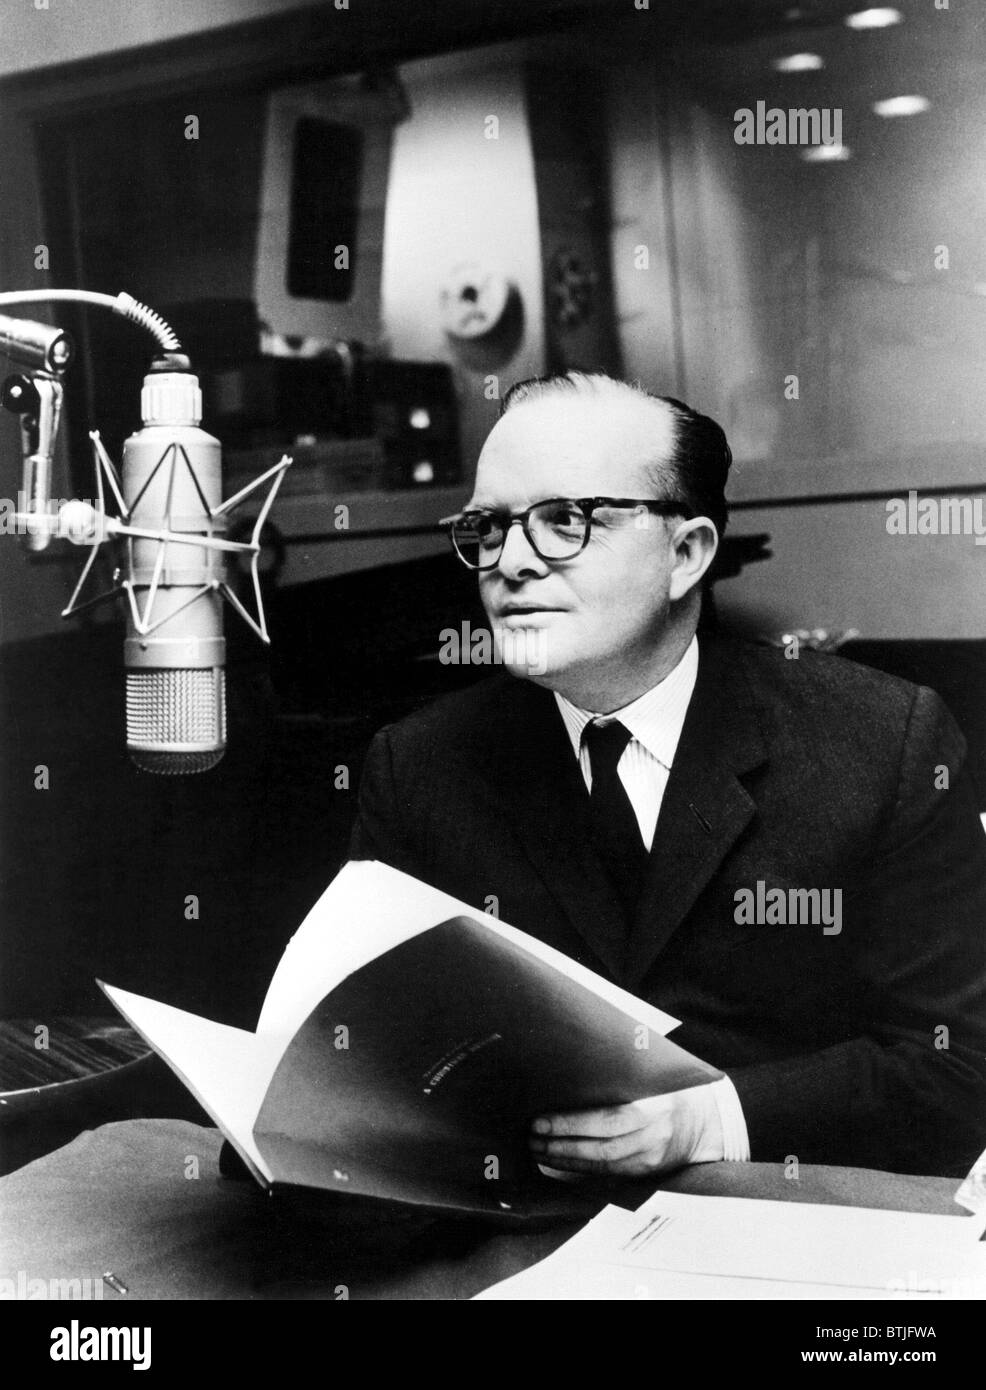 Truman Capote A Christmas Memory.Truman Capote In Studio For A Christmas Memory Tv In 1967